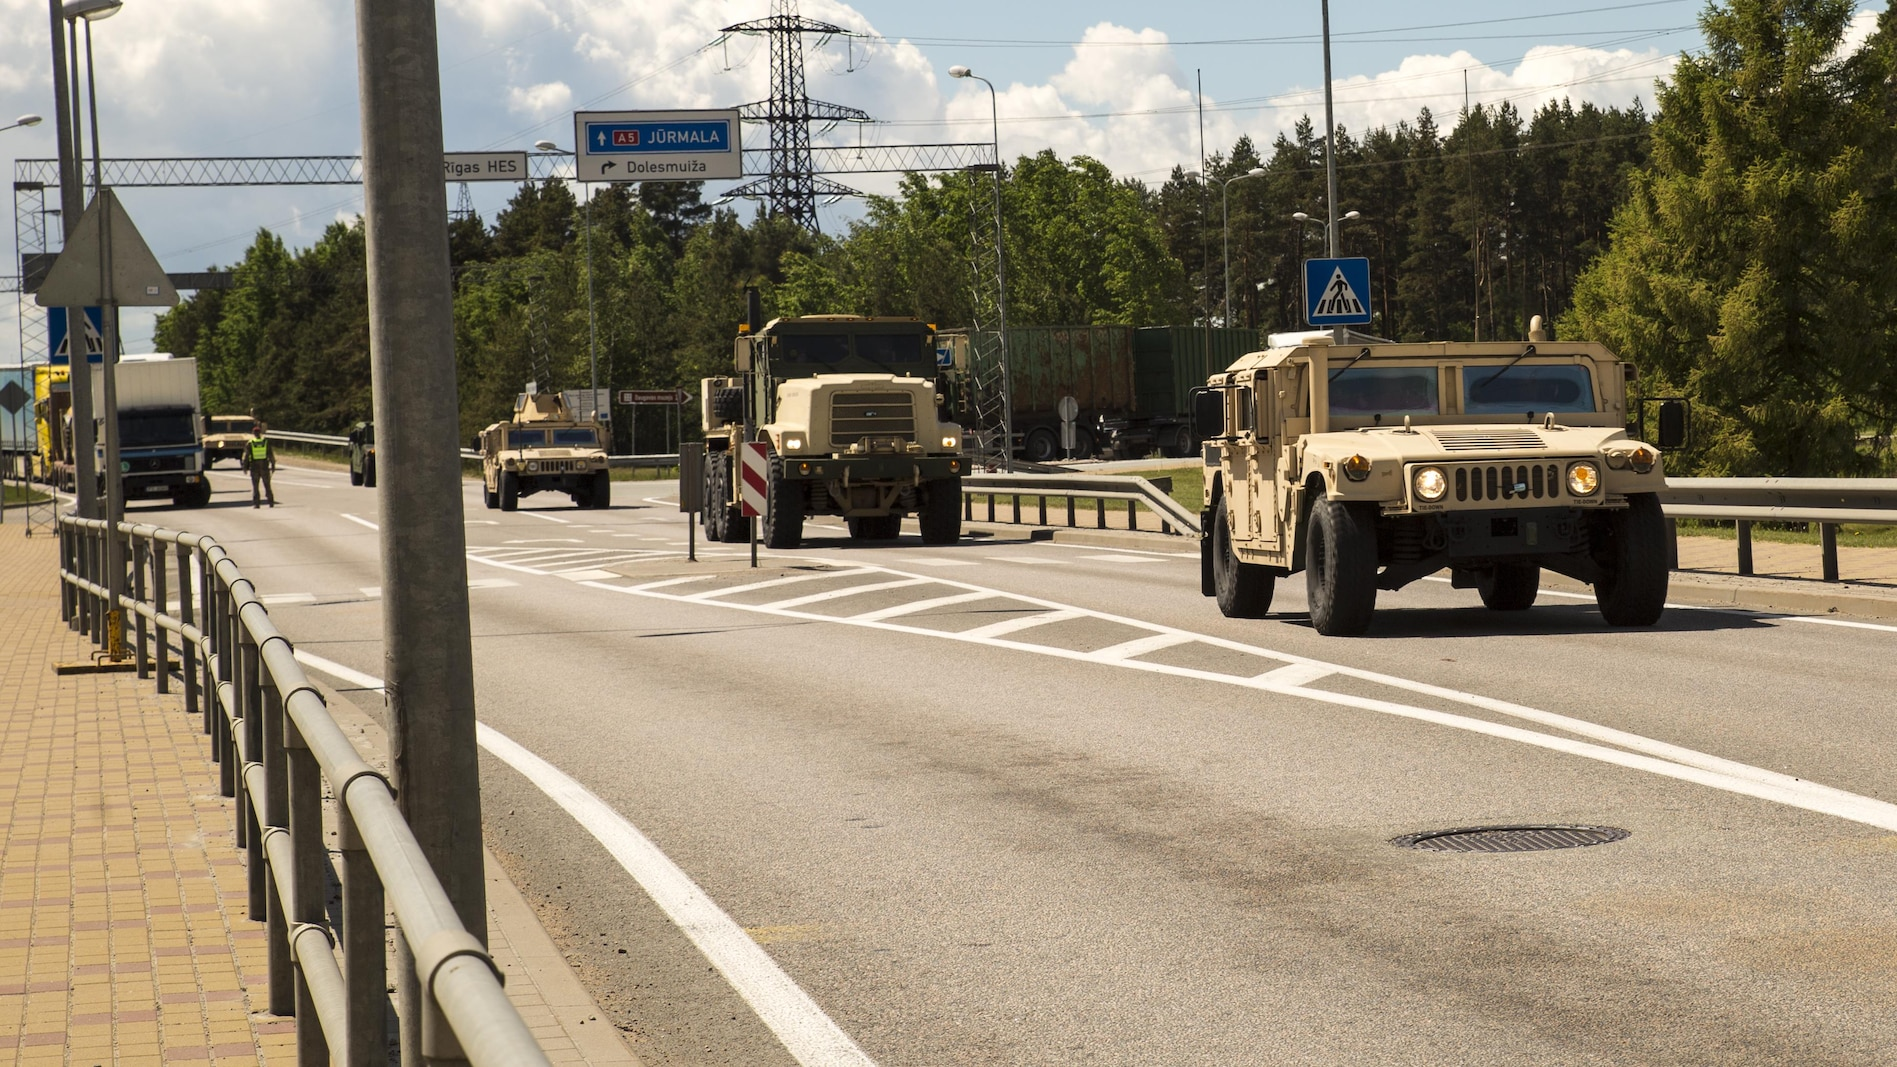 SALASPILS, Latvia -- Marines with the Combat Logistics Battalion 25, 4th Marine Logistics Group, Marine Forces Reserve, transport equipment and personnel by convoy from Ventspils to Adazi, Latvia, during Exercise Saber Strike 17, June 2, 2017.  Exercise Saber Strike 17 is an annual combined-joint exercise conducted at various locations throughout the Baltic region and Poland. The combined training prepares NATO Allies and partners to effectively respond to regional crises and to meet their own security needs by strengthening their borders and countering threats. (U.S. Marine Corps photo by Cpl. Devan Alonzo Barnett/Released)